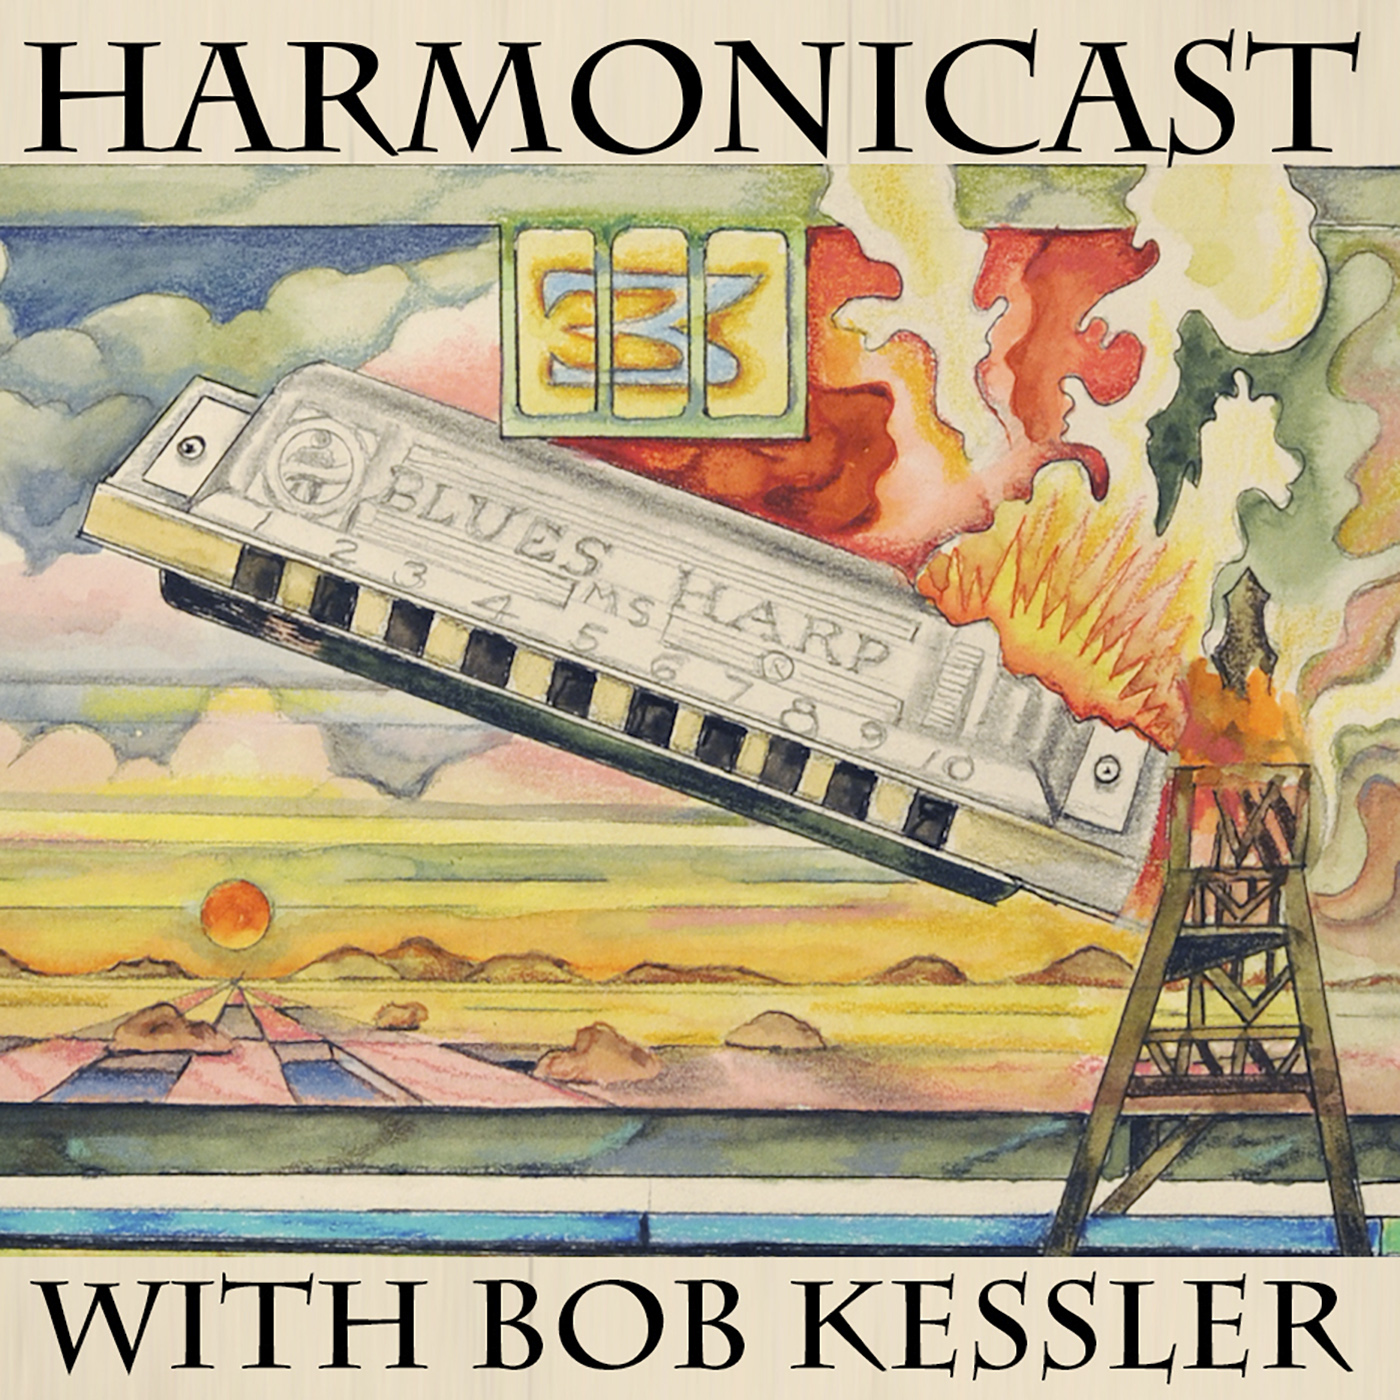 Harmonicast Episode 18 - Ross Garren